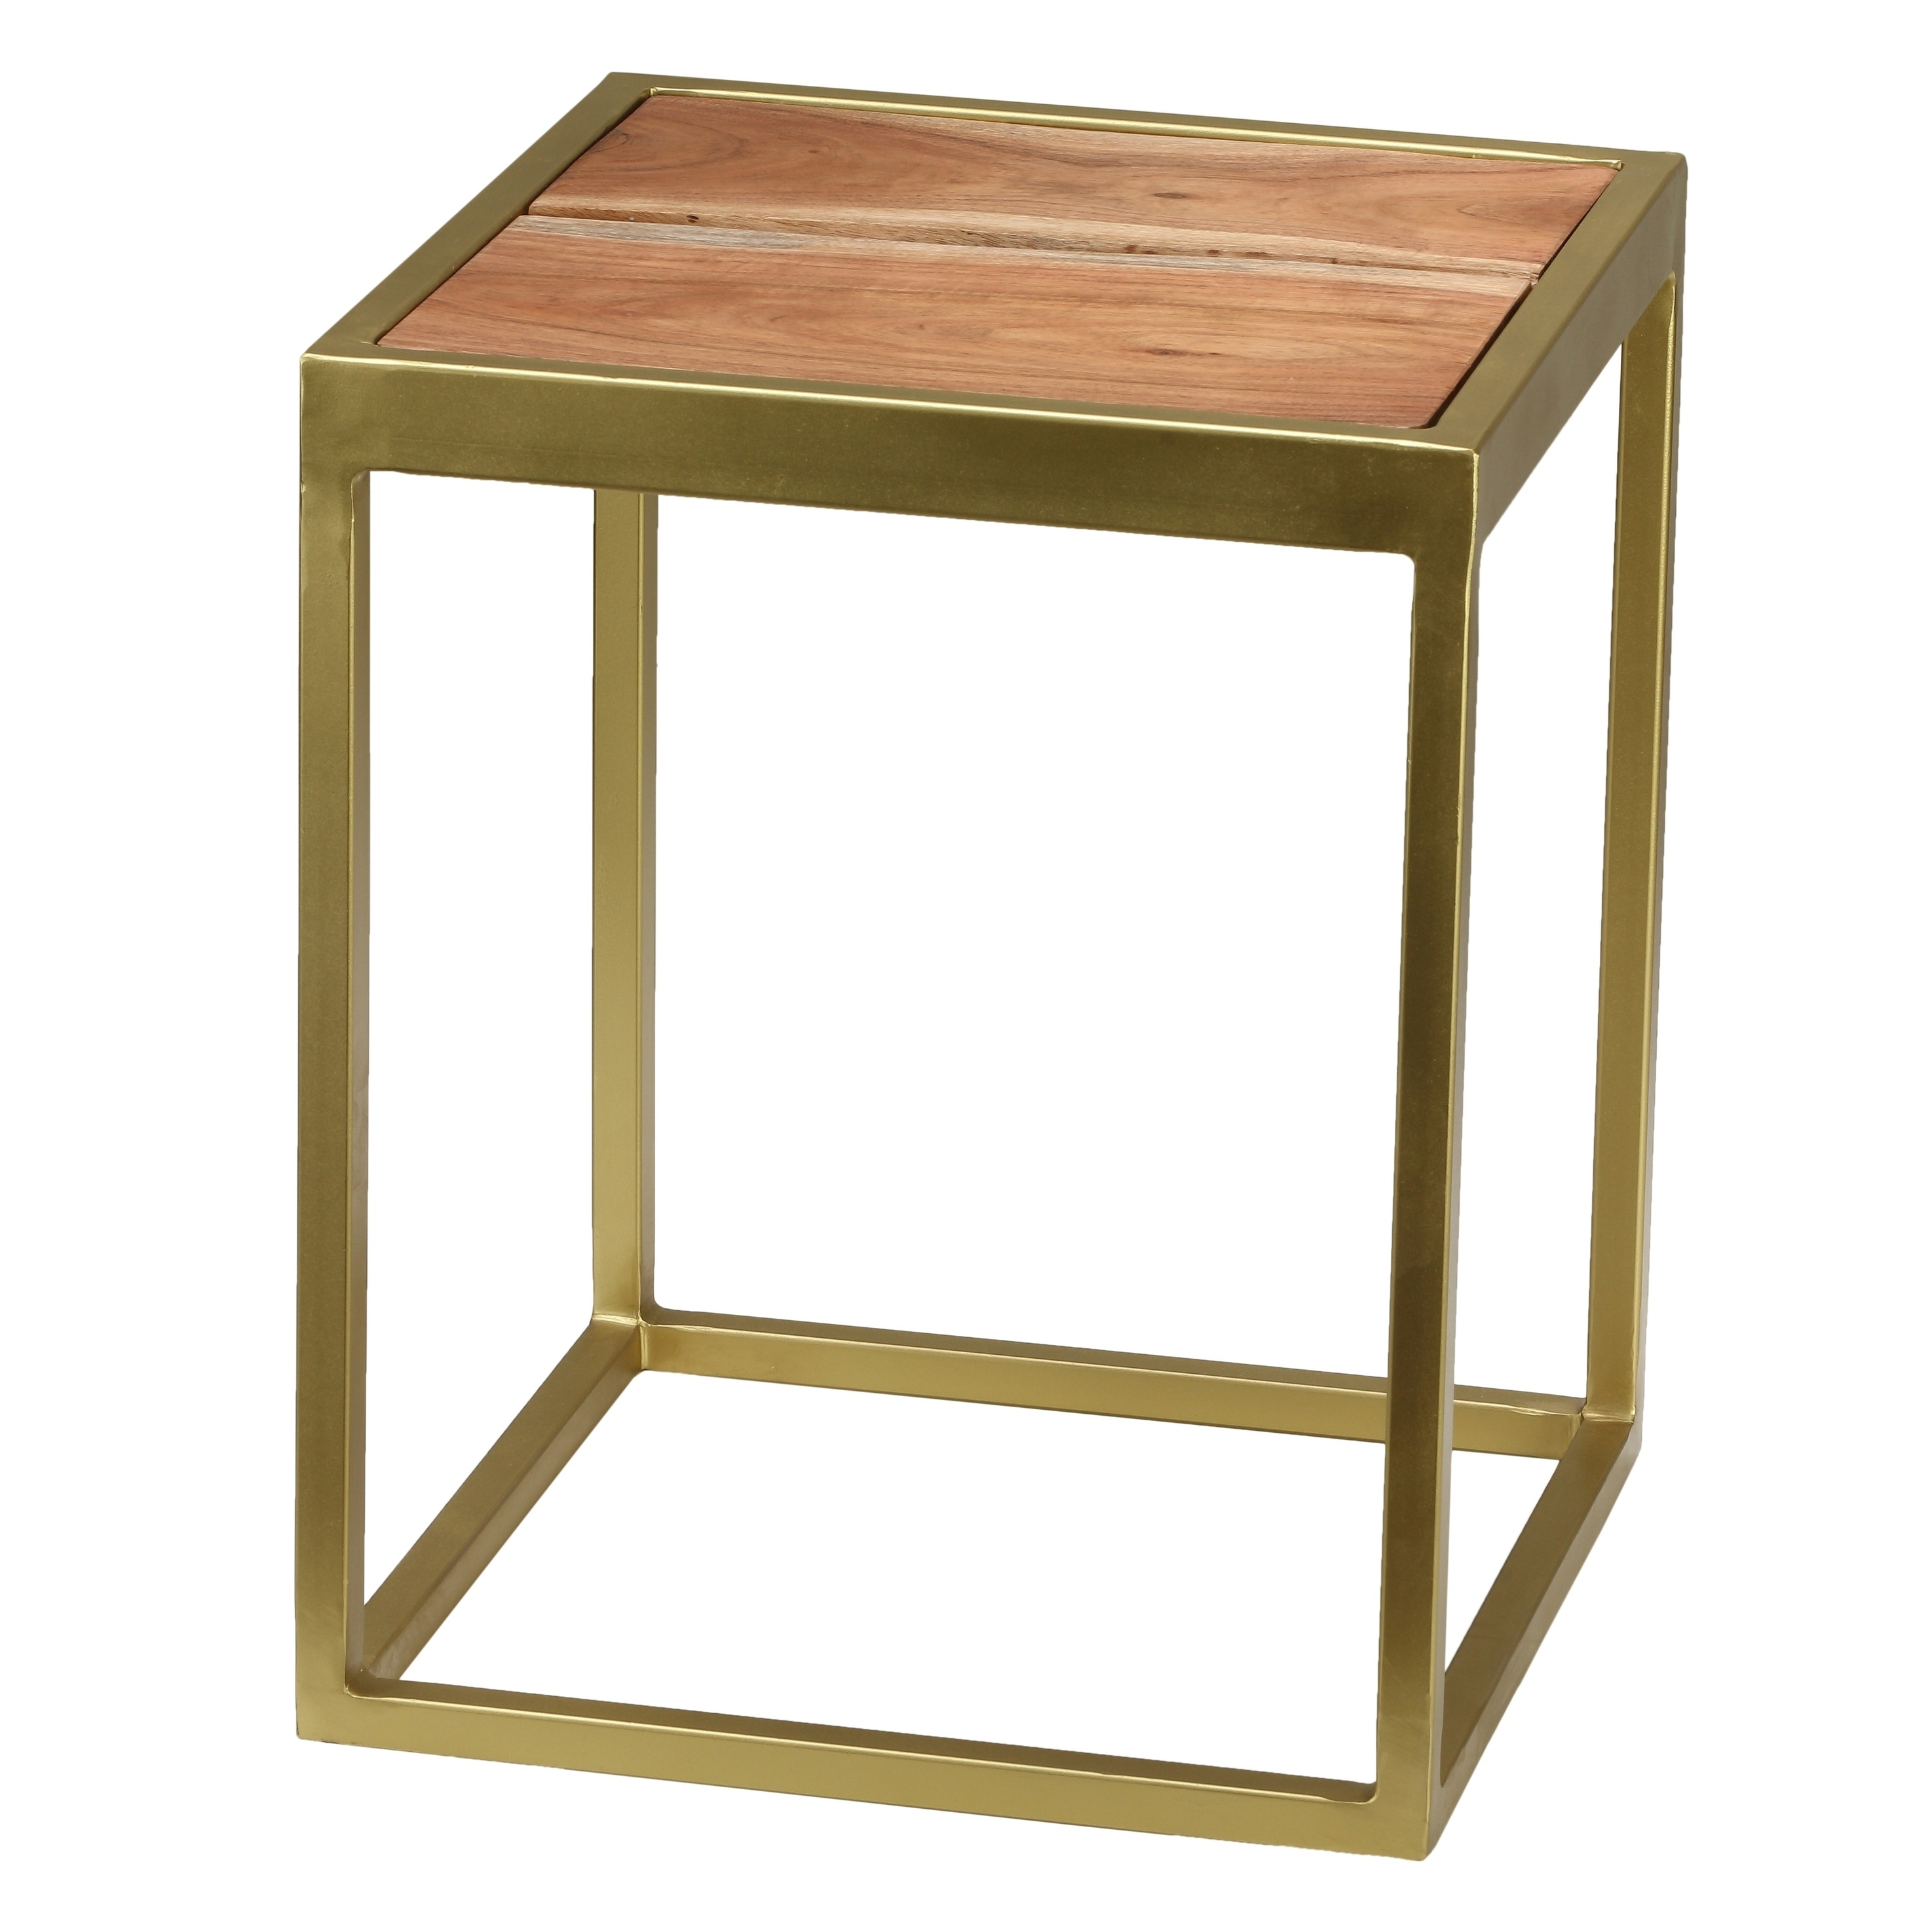 Bare Decor Dixie Brushed Goldtone Metal Acacia Wood End Table Free Shipping Today 25481221